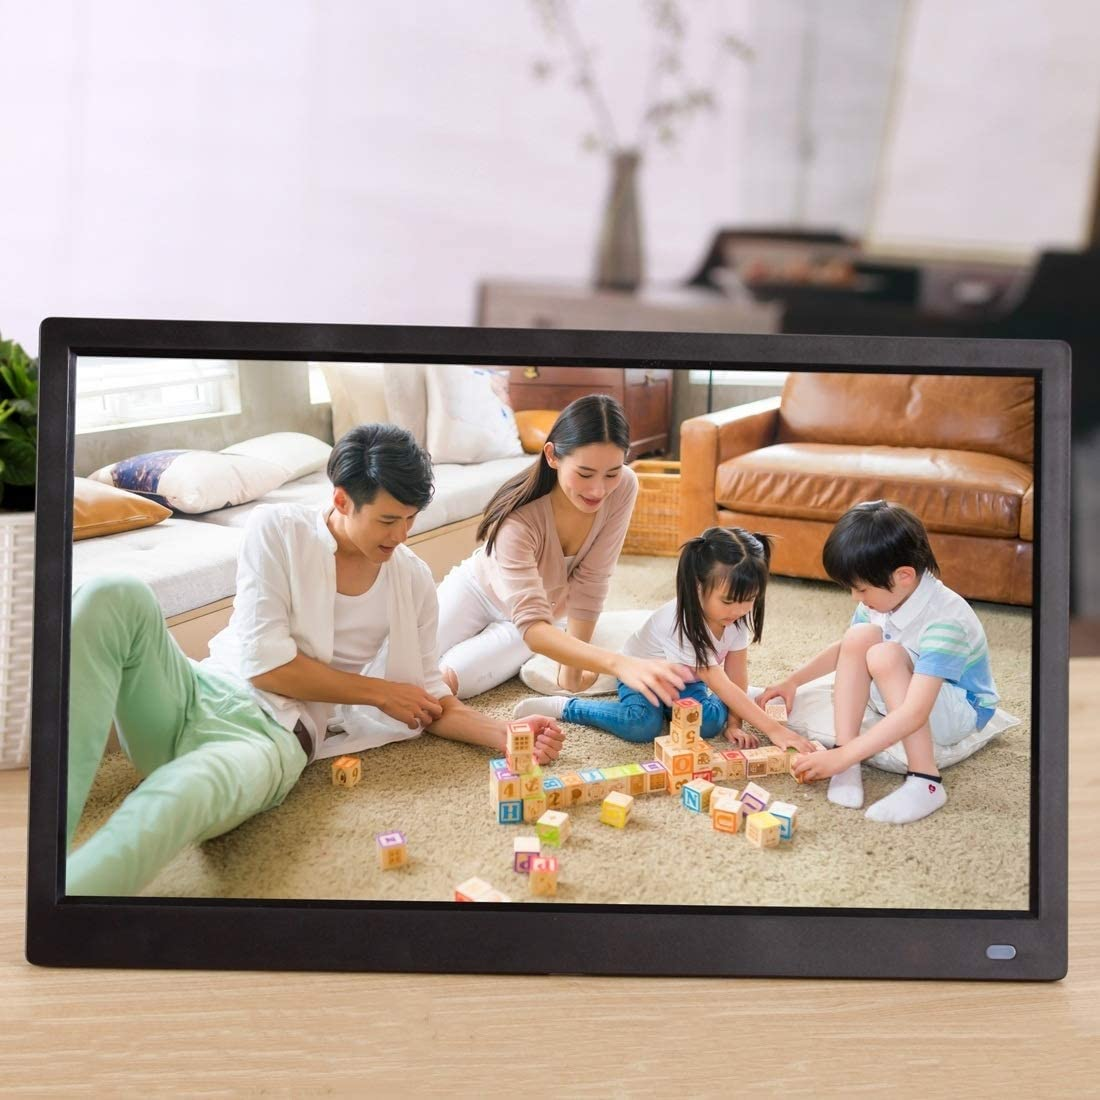 15.6 inch FHD LED Display Max 50% OFF Digital Holder Photo with Frame Remo Fashionable